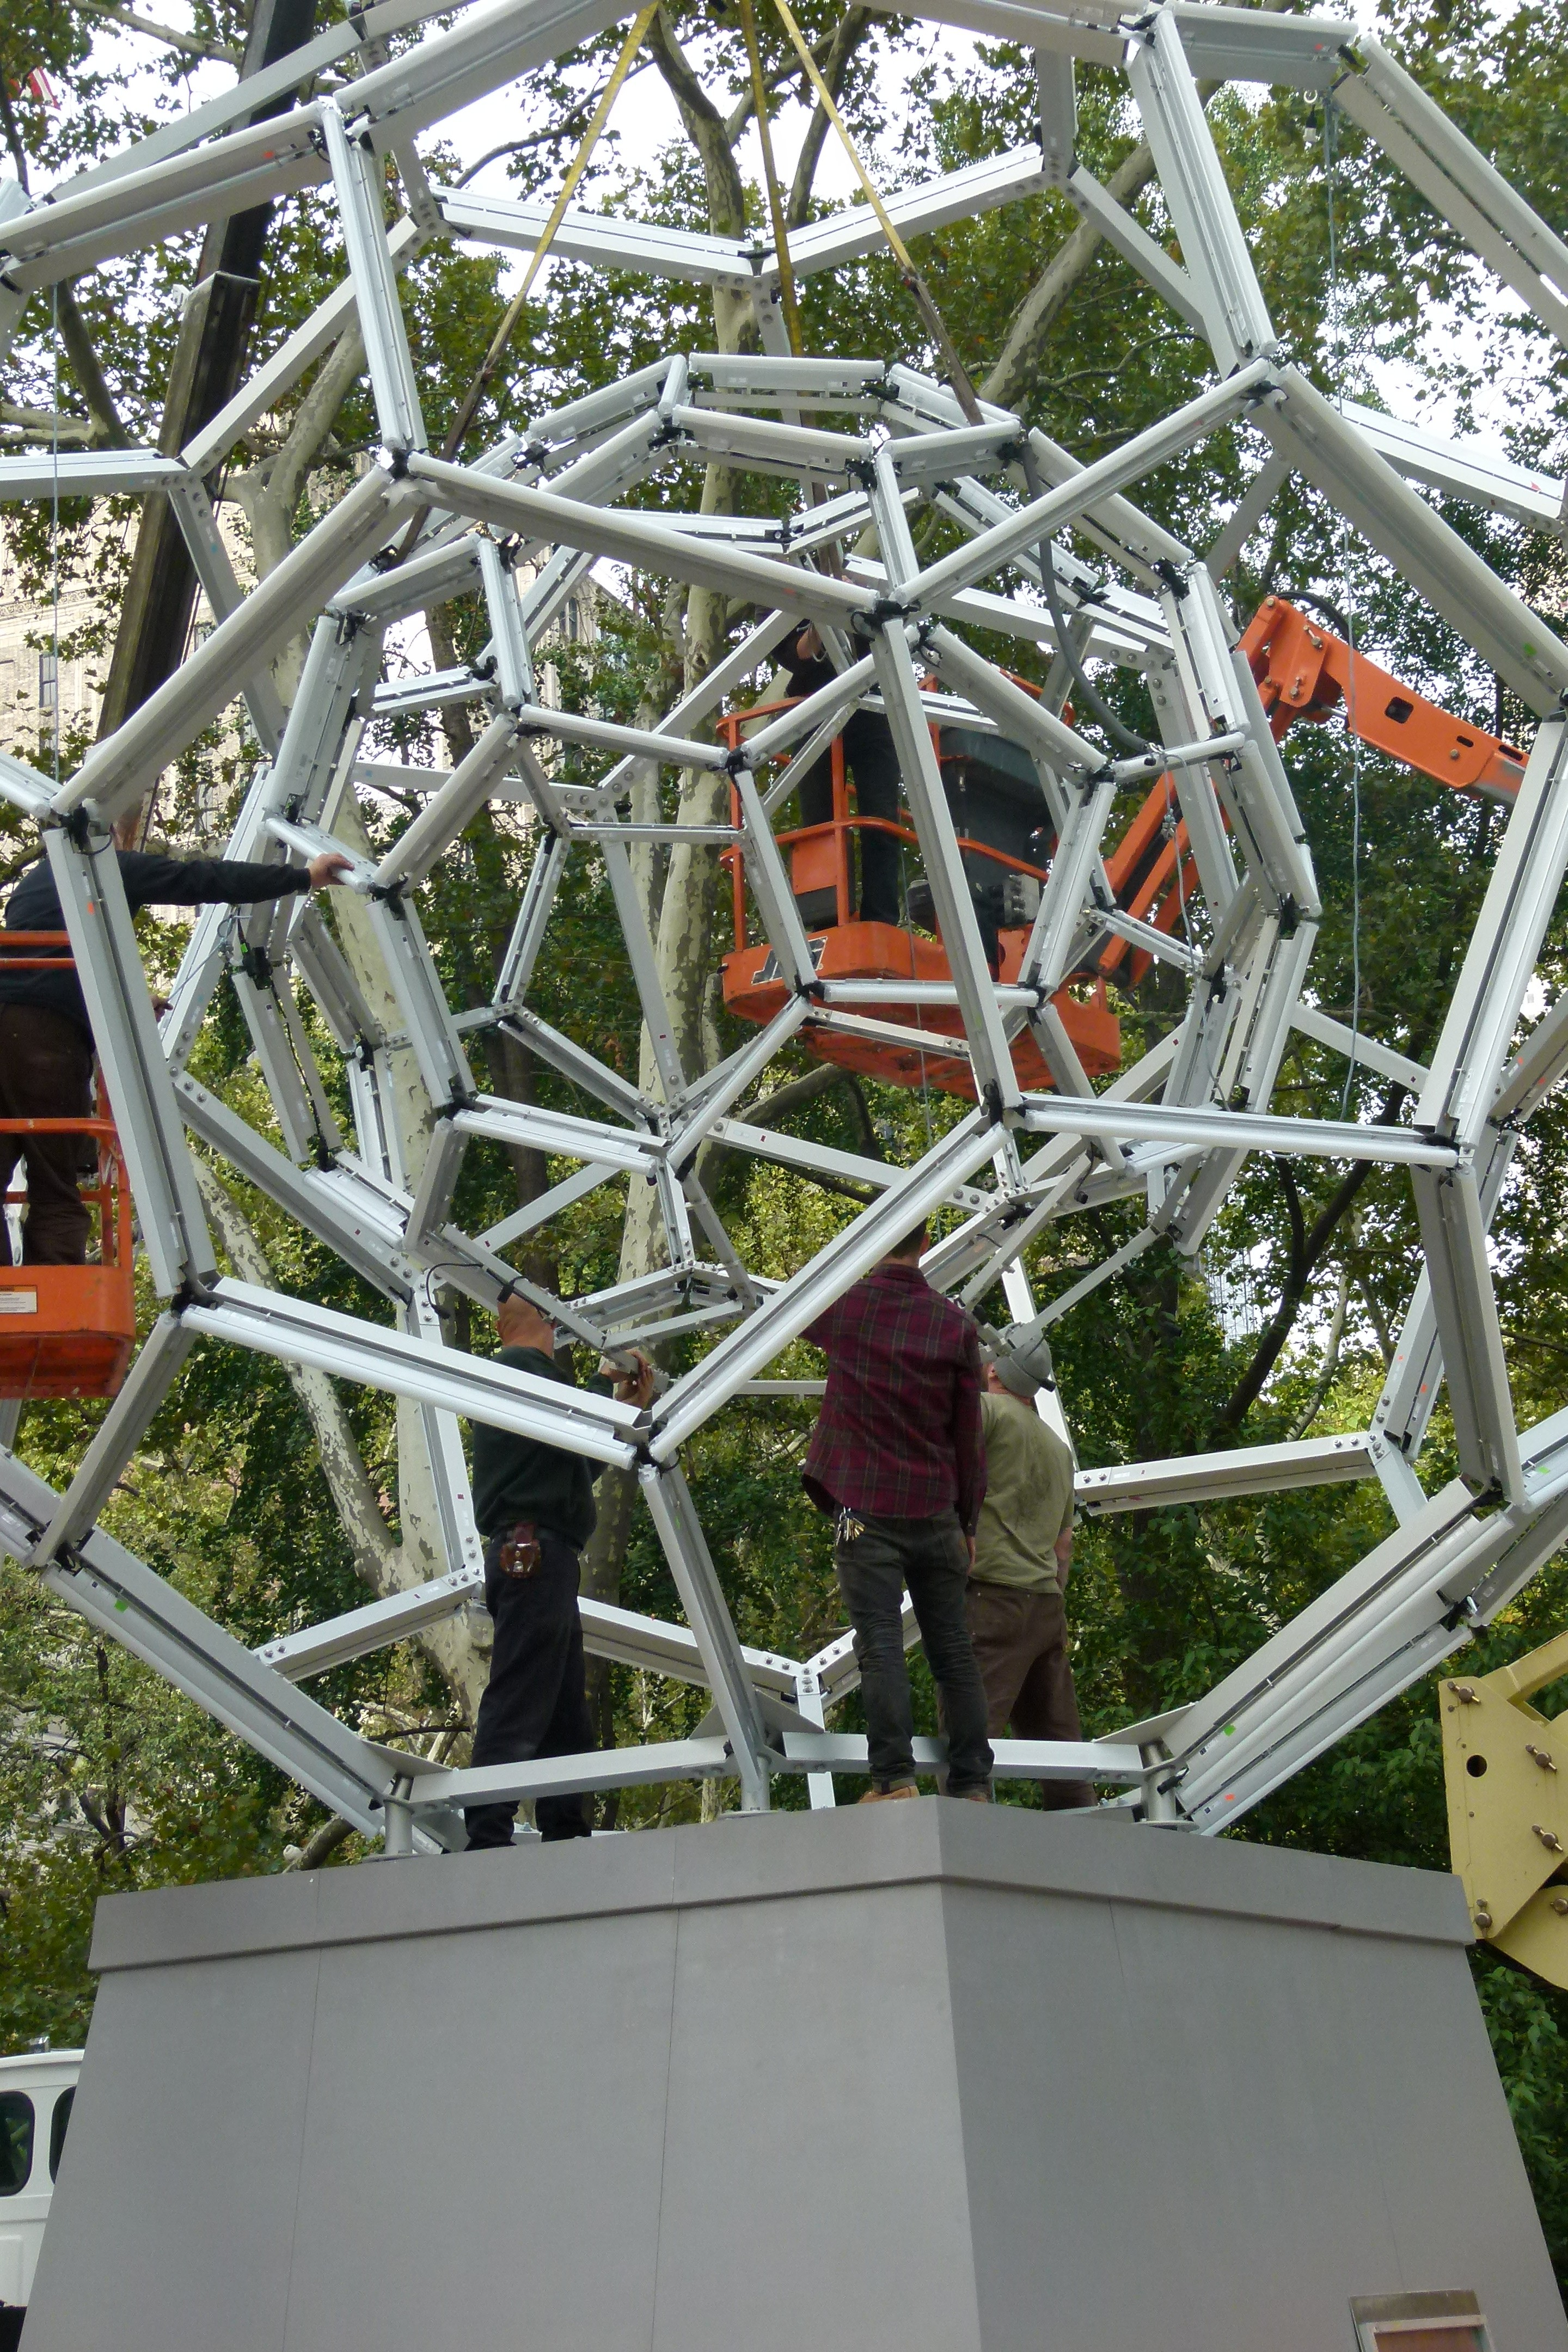 Buckyball in Madison Square Park